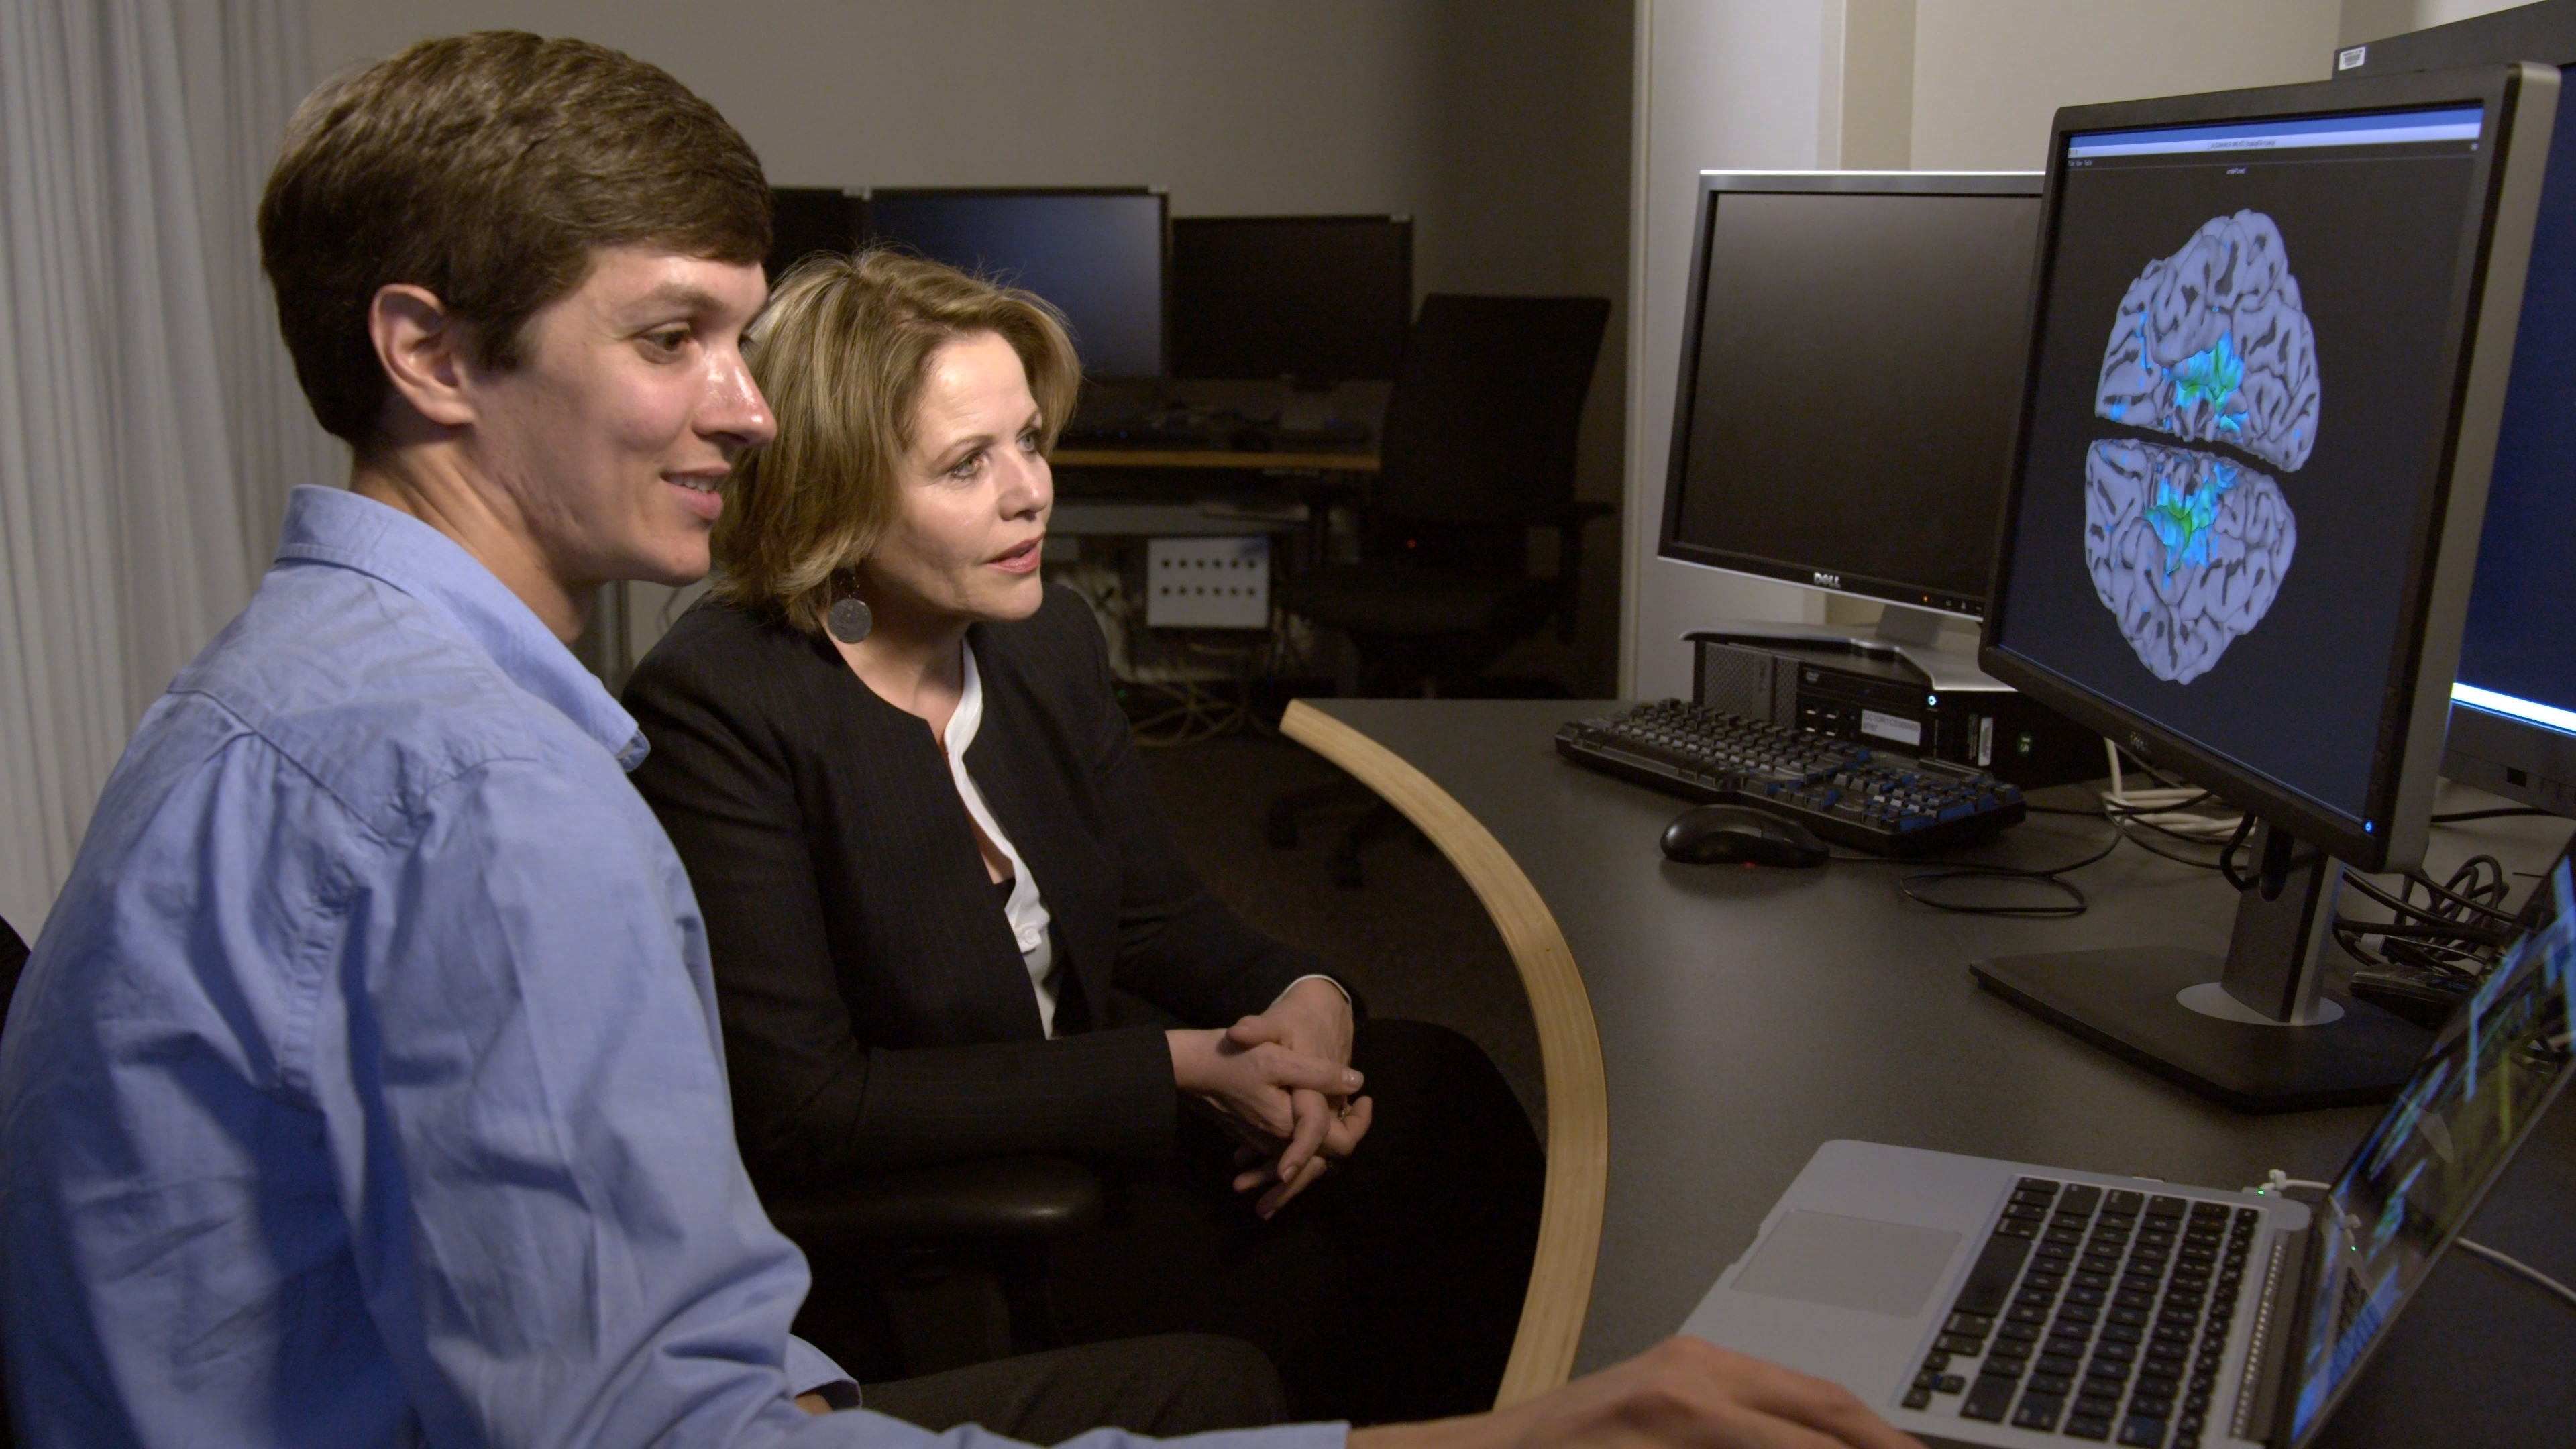 In this April 15, 2017 photo provided by the National Institutes of Health, singer Renee Fleming looks at a brain scan with NIH neuroscientist David Jangraw after singing in the MRI machine, at the National Institutes of Health in Bethesda, Md. (National Institutes of Health via AP)